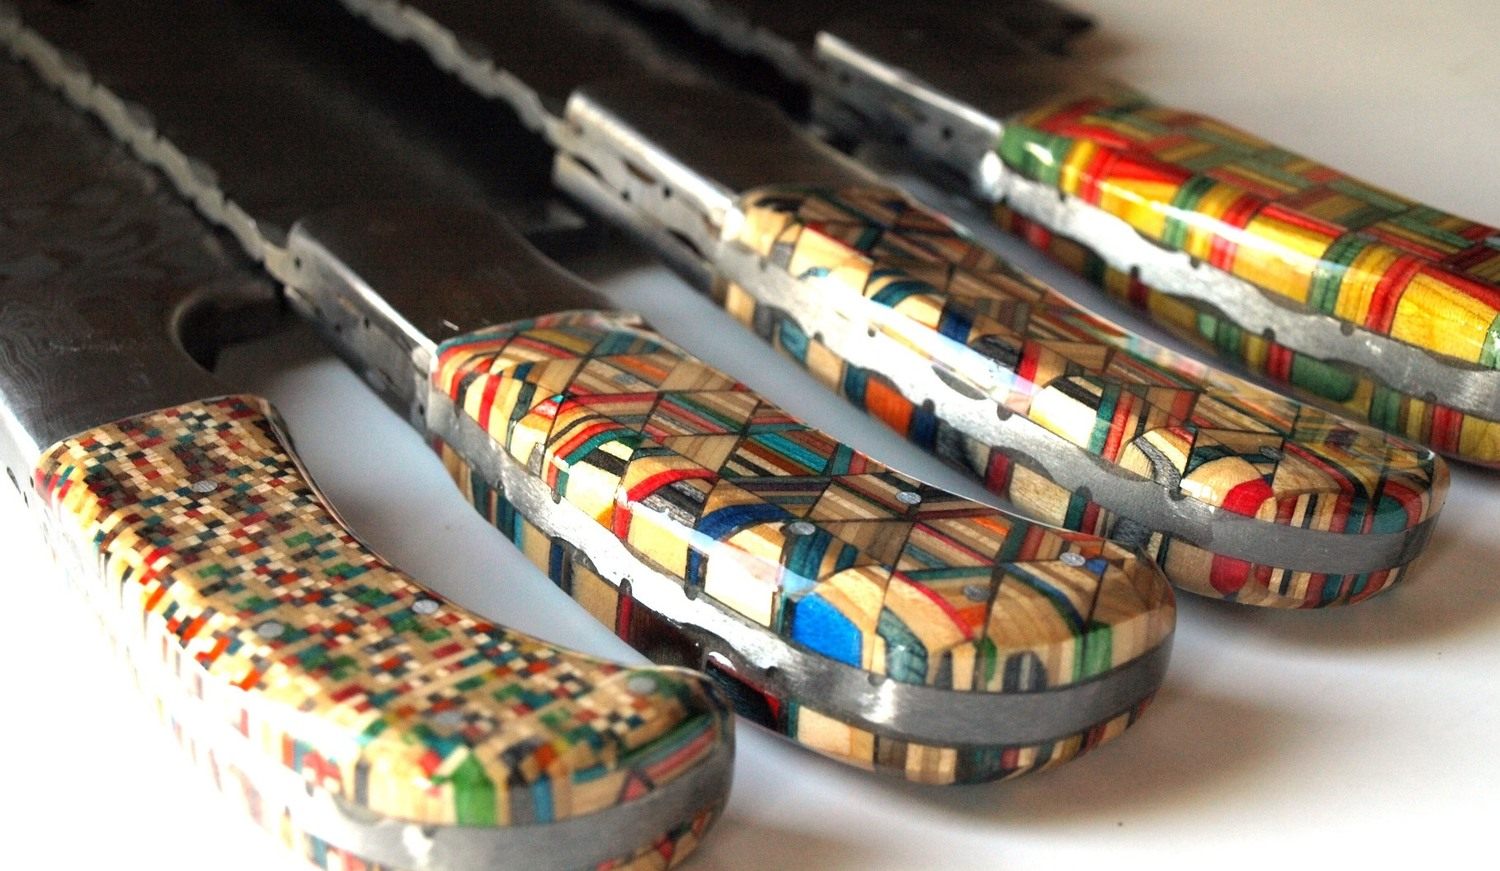 Incredible 'Skate Art' Chopping Knives Made From Recycled ...